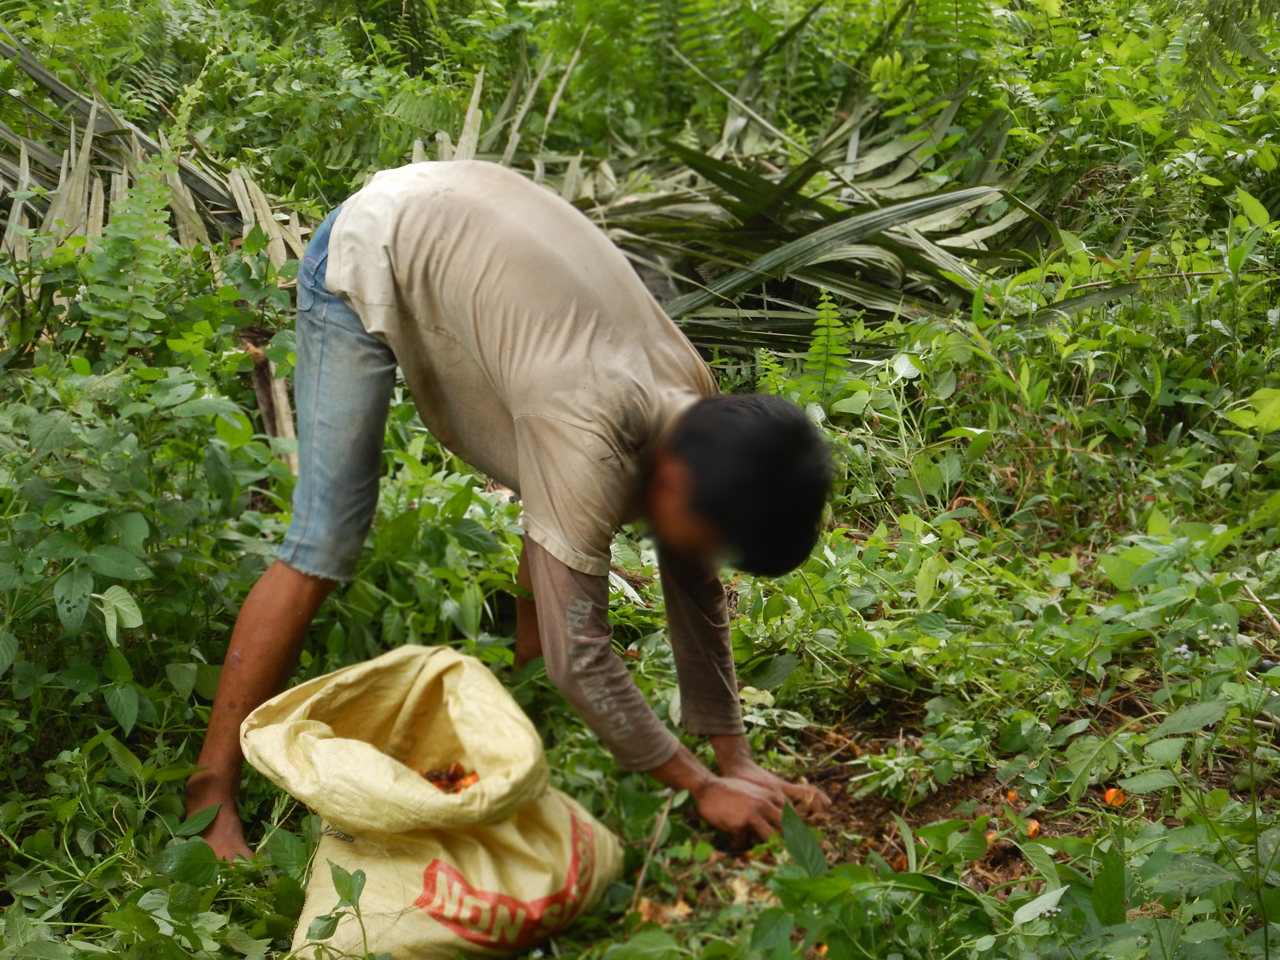 Workers Rights, Labor Rights & Palm Oil